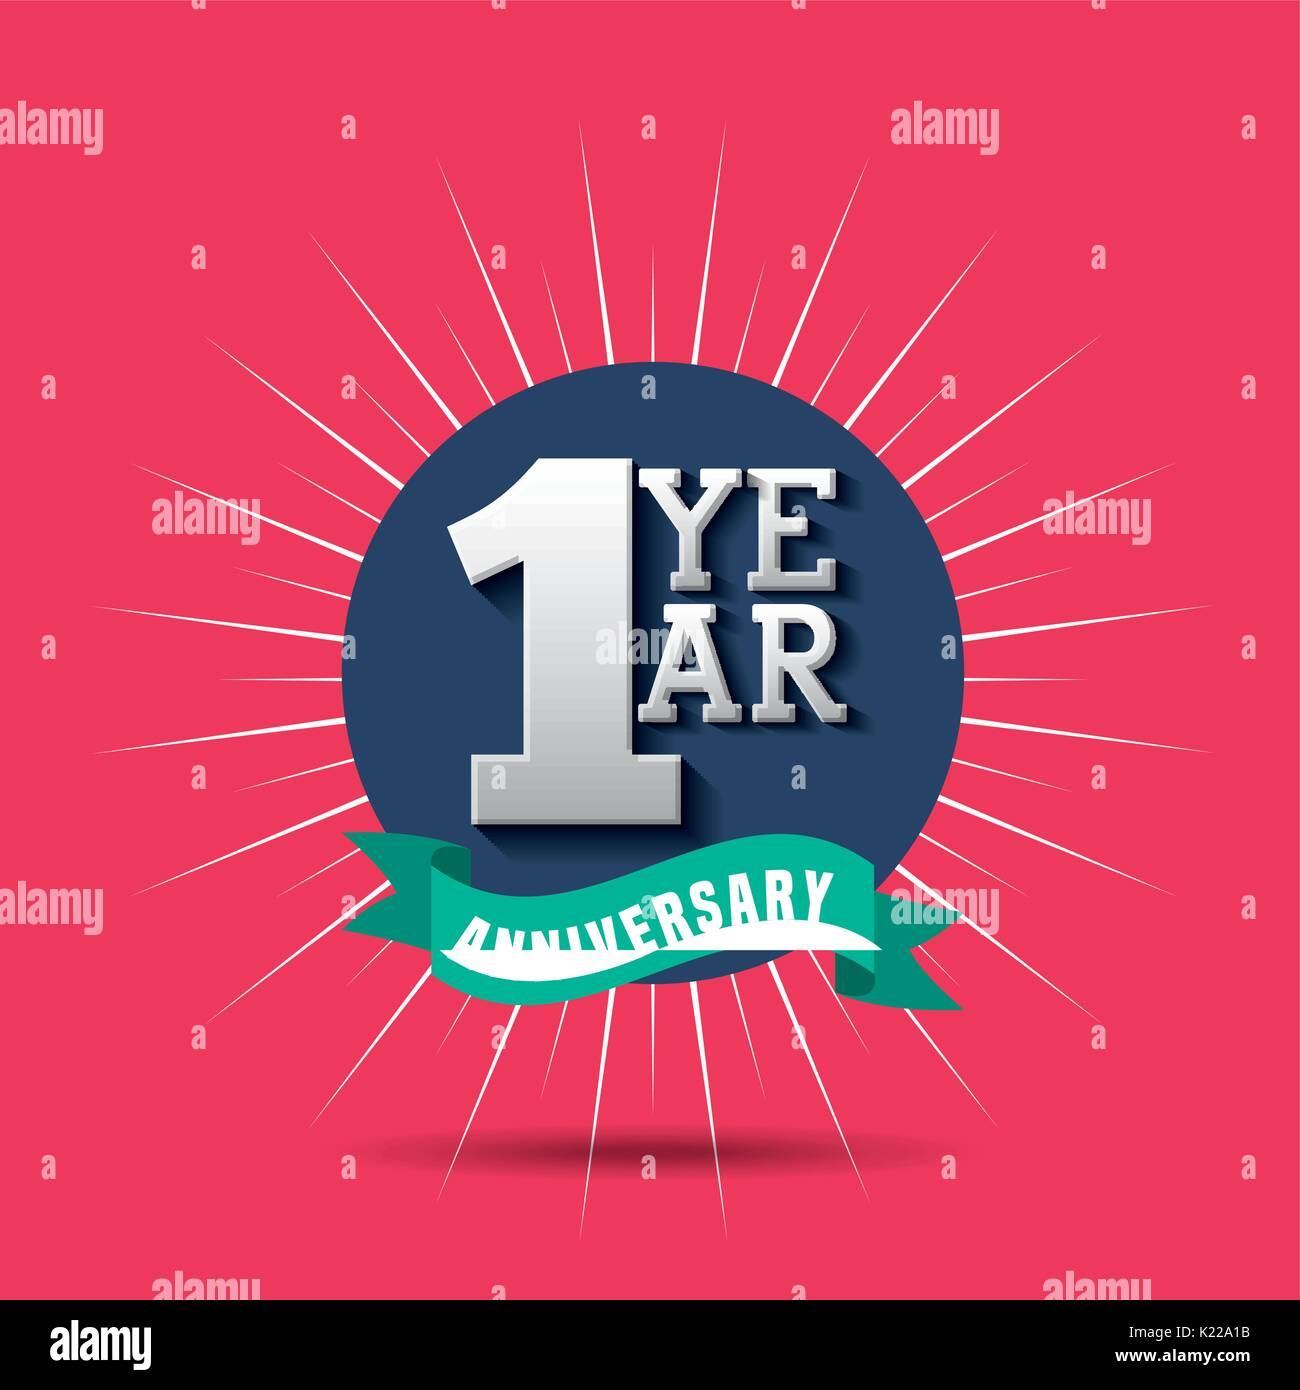 anniversary banner design Stock Photo, Royalty Free Image ...